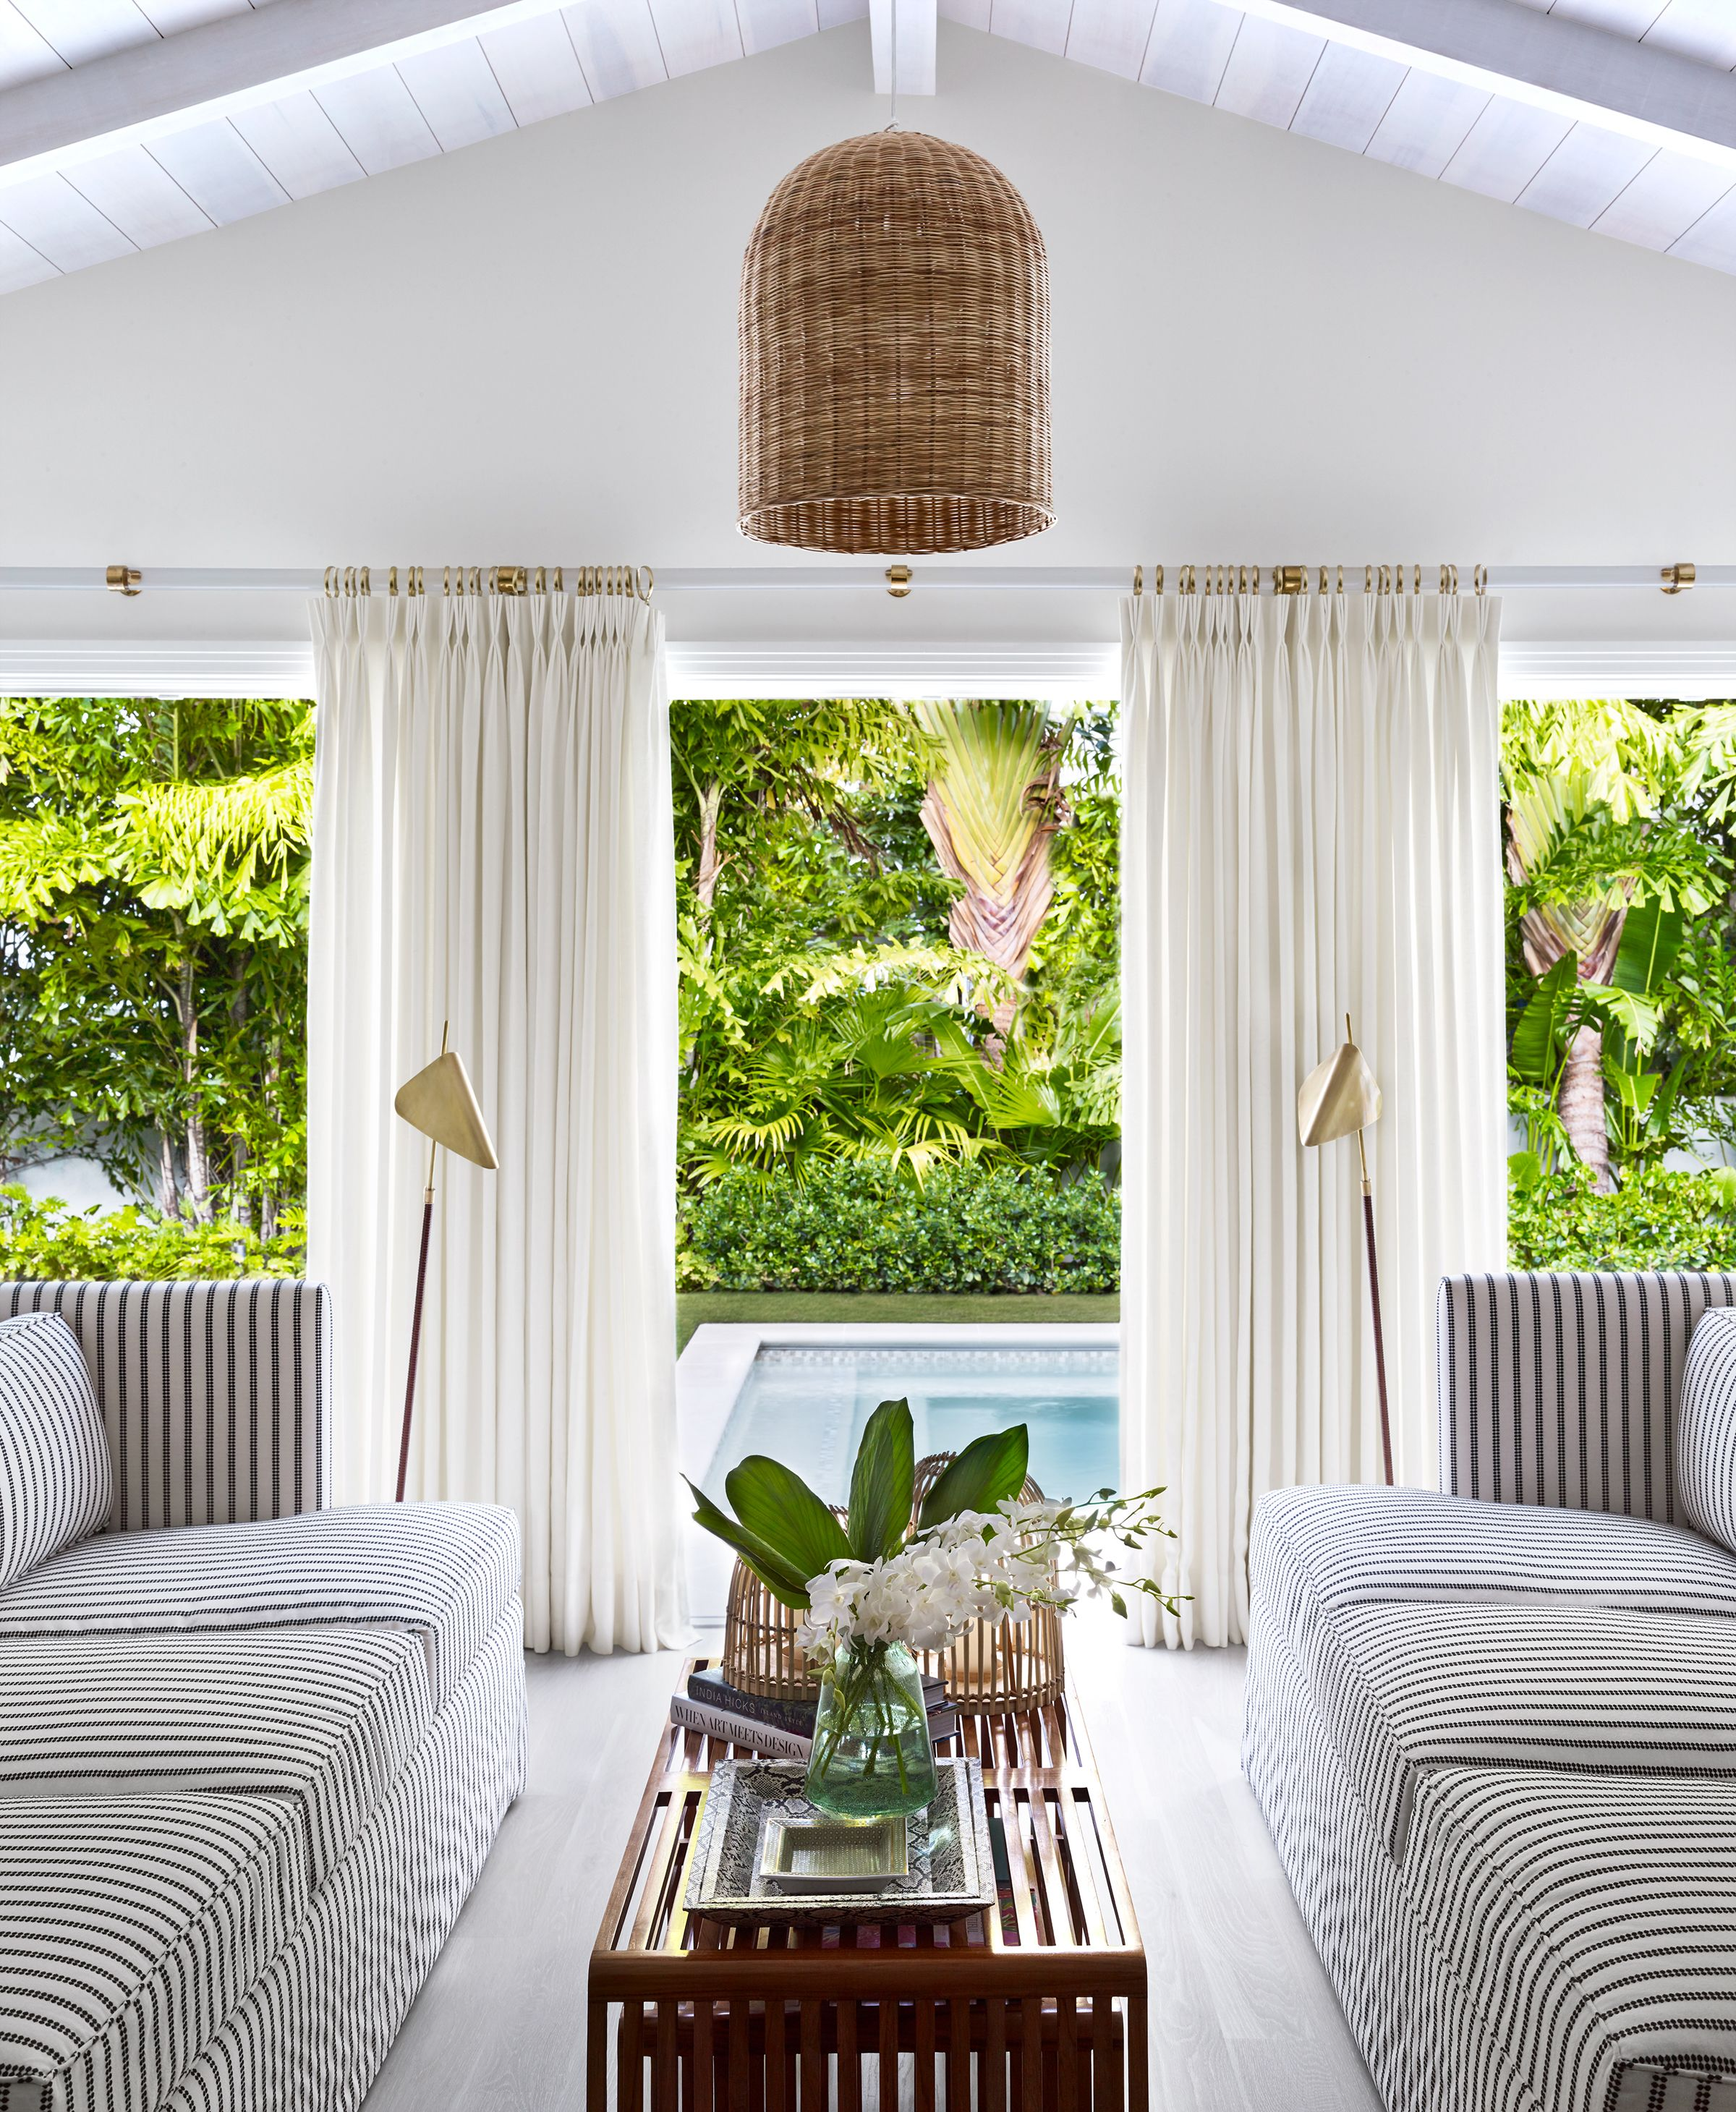 pool house design ideas & 21 Pool House Design Ideas That Feel Like Vacation - Pool House ...